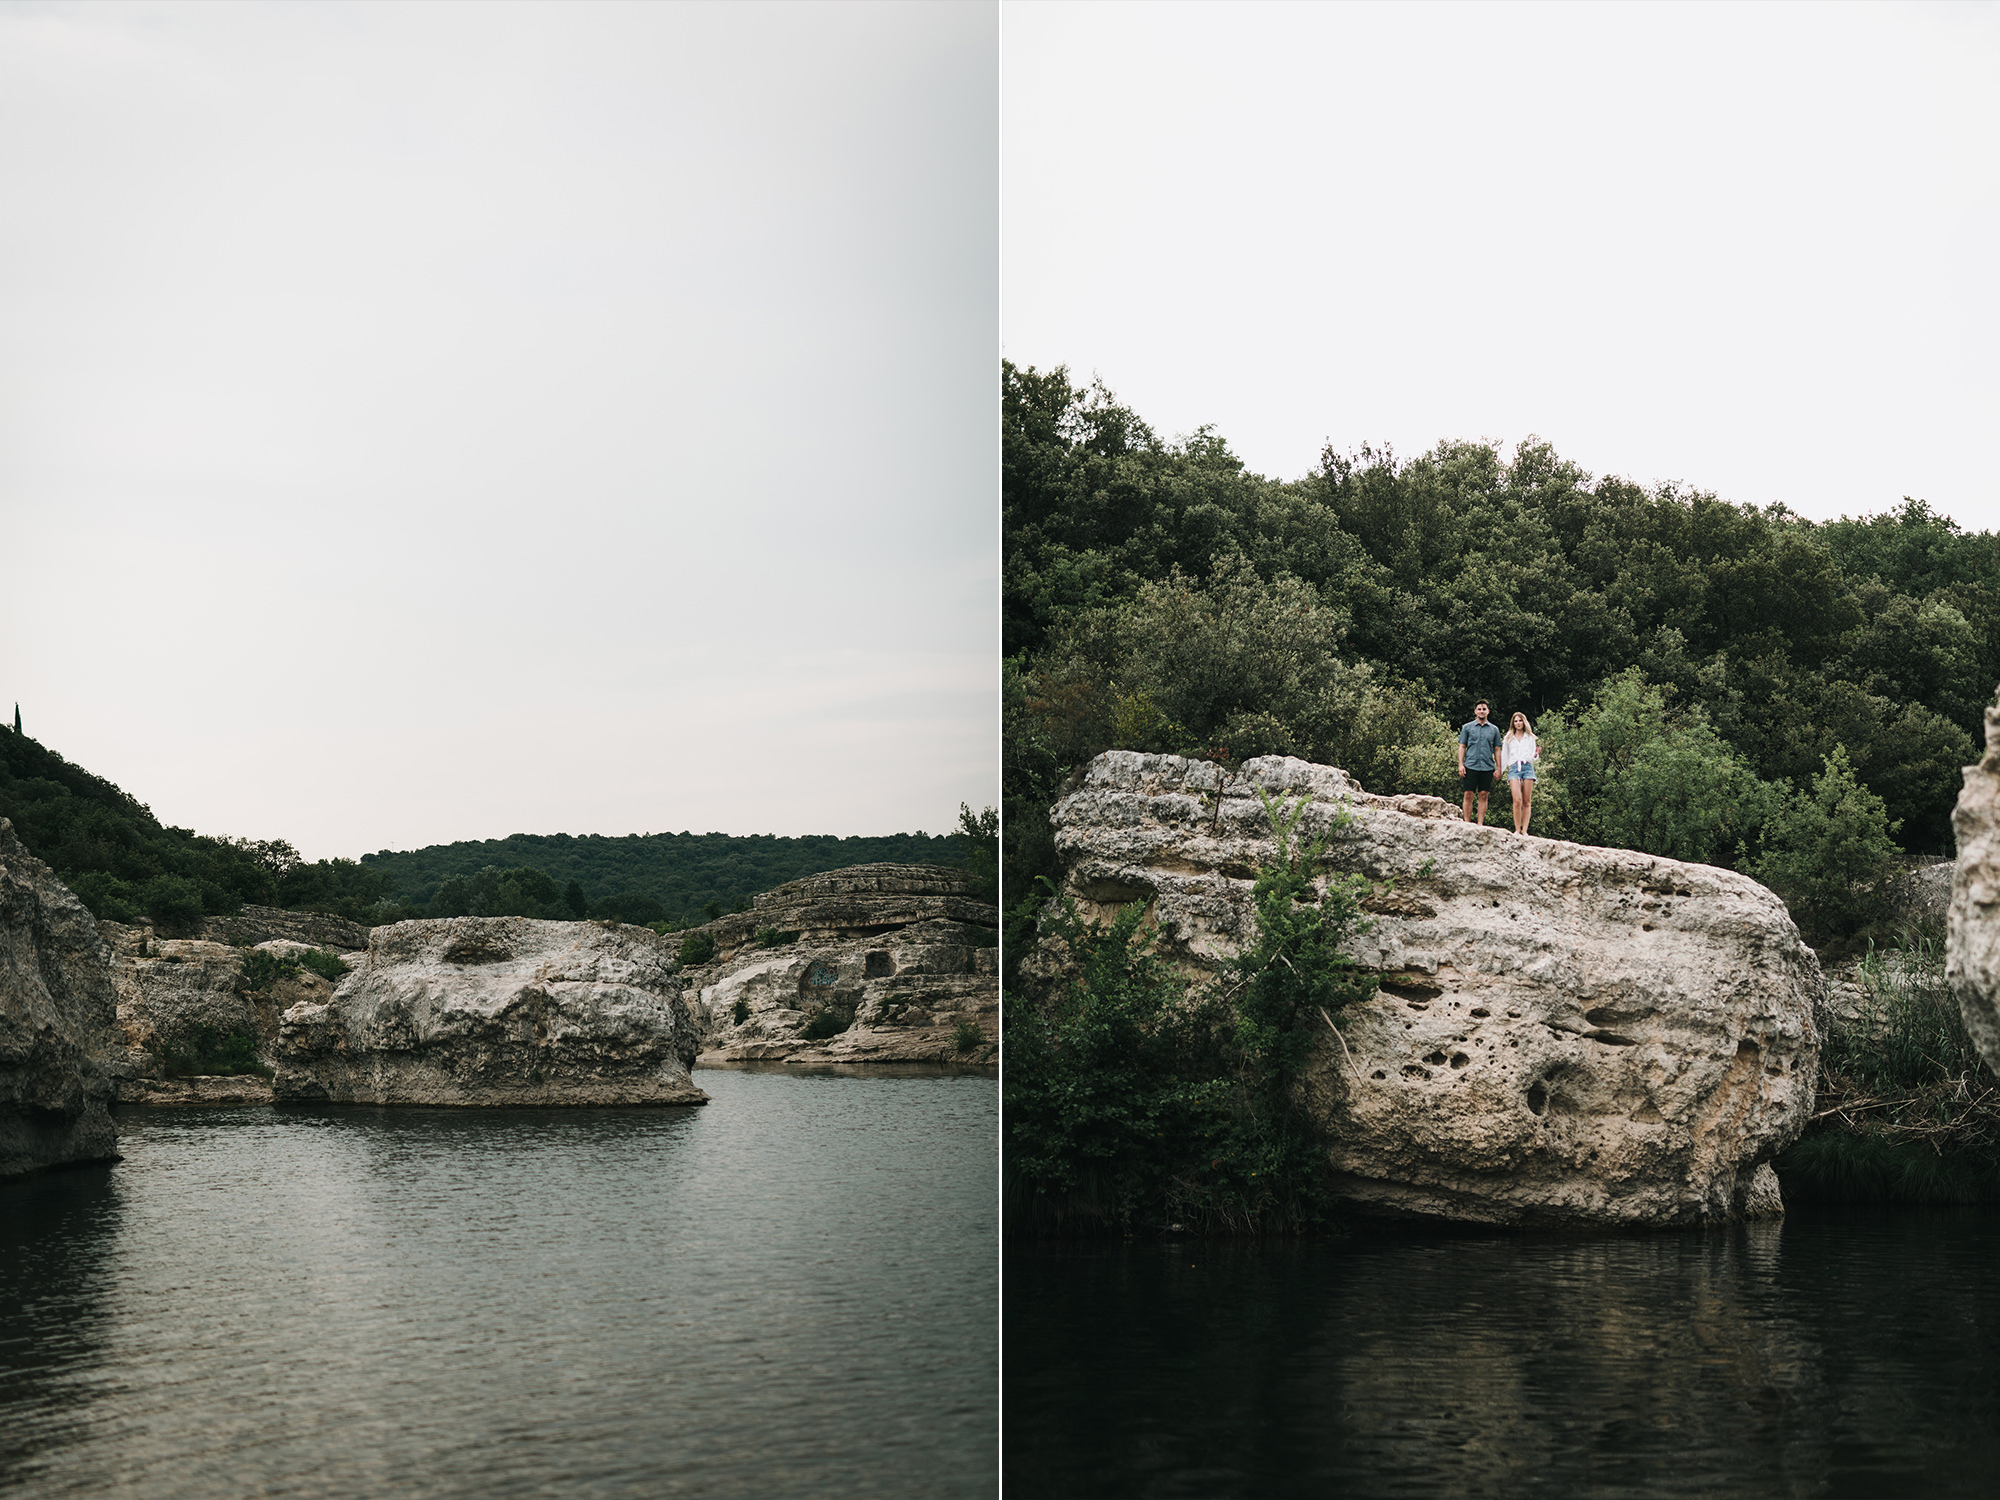 engagement_session_ardeche_river_C+M_neupapphotography-58.jpg